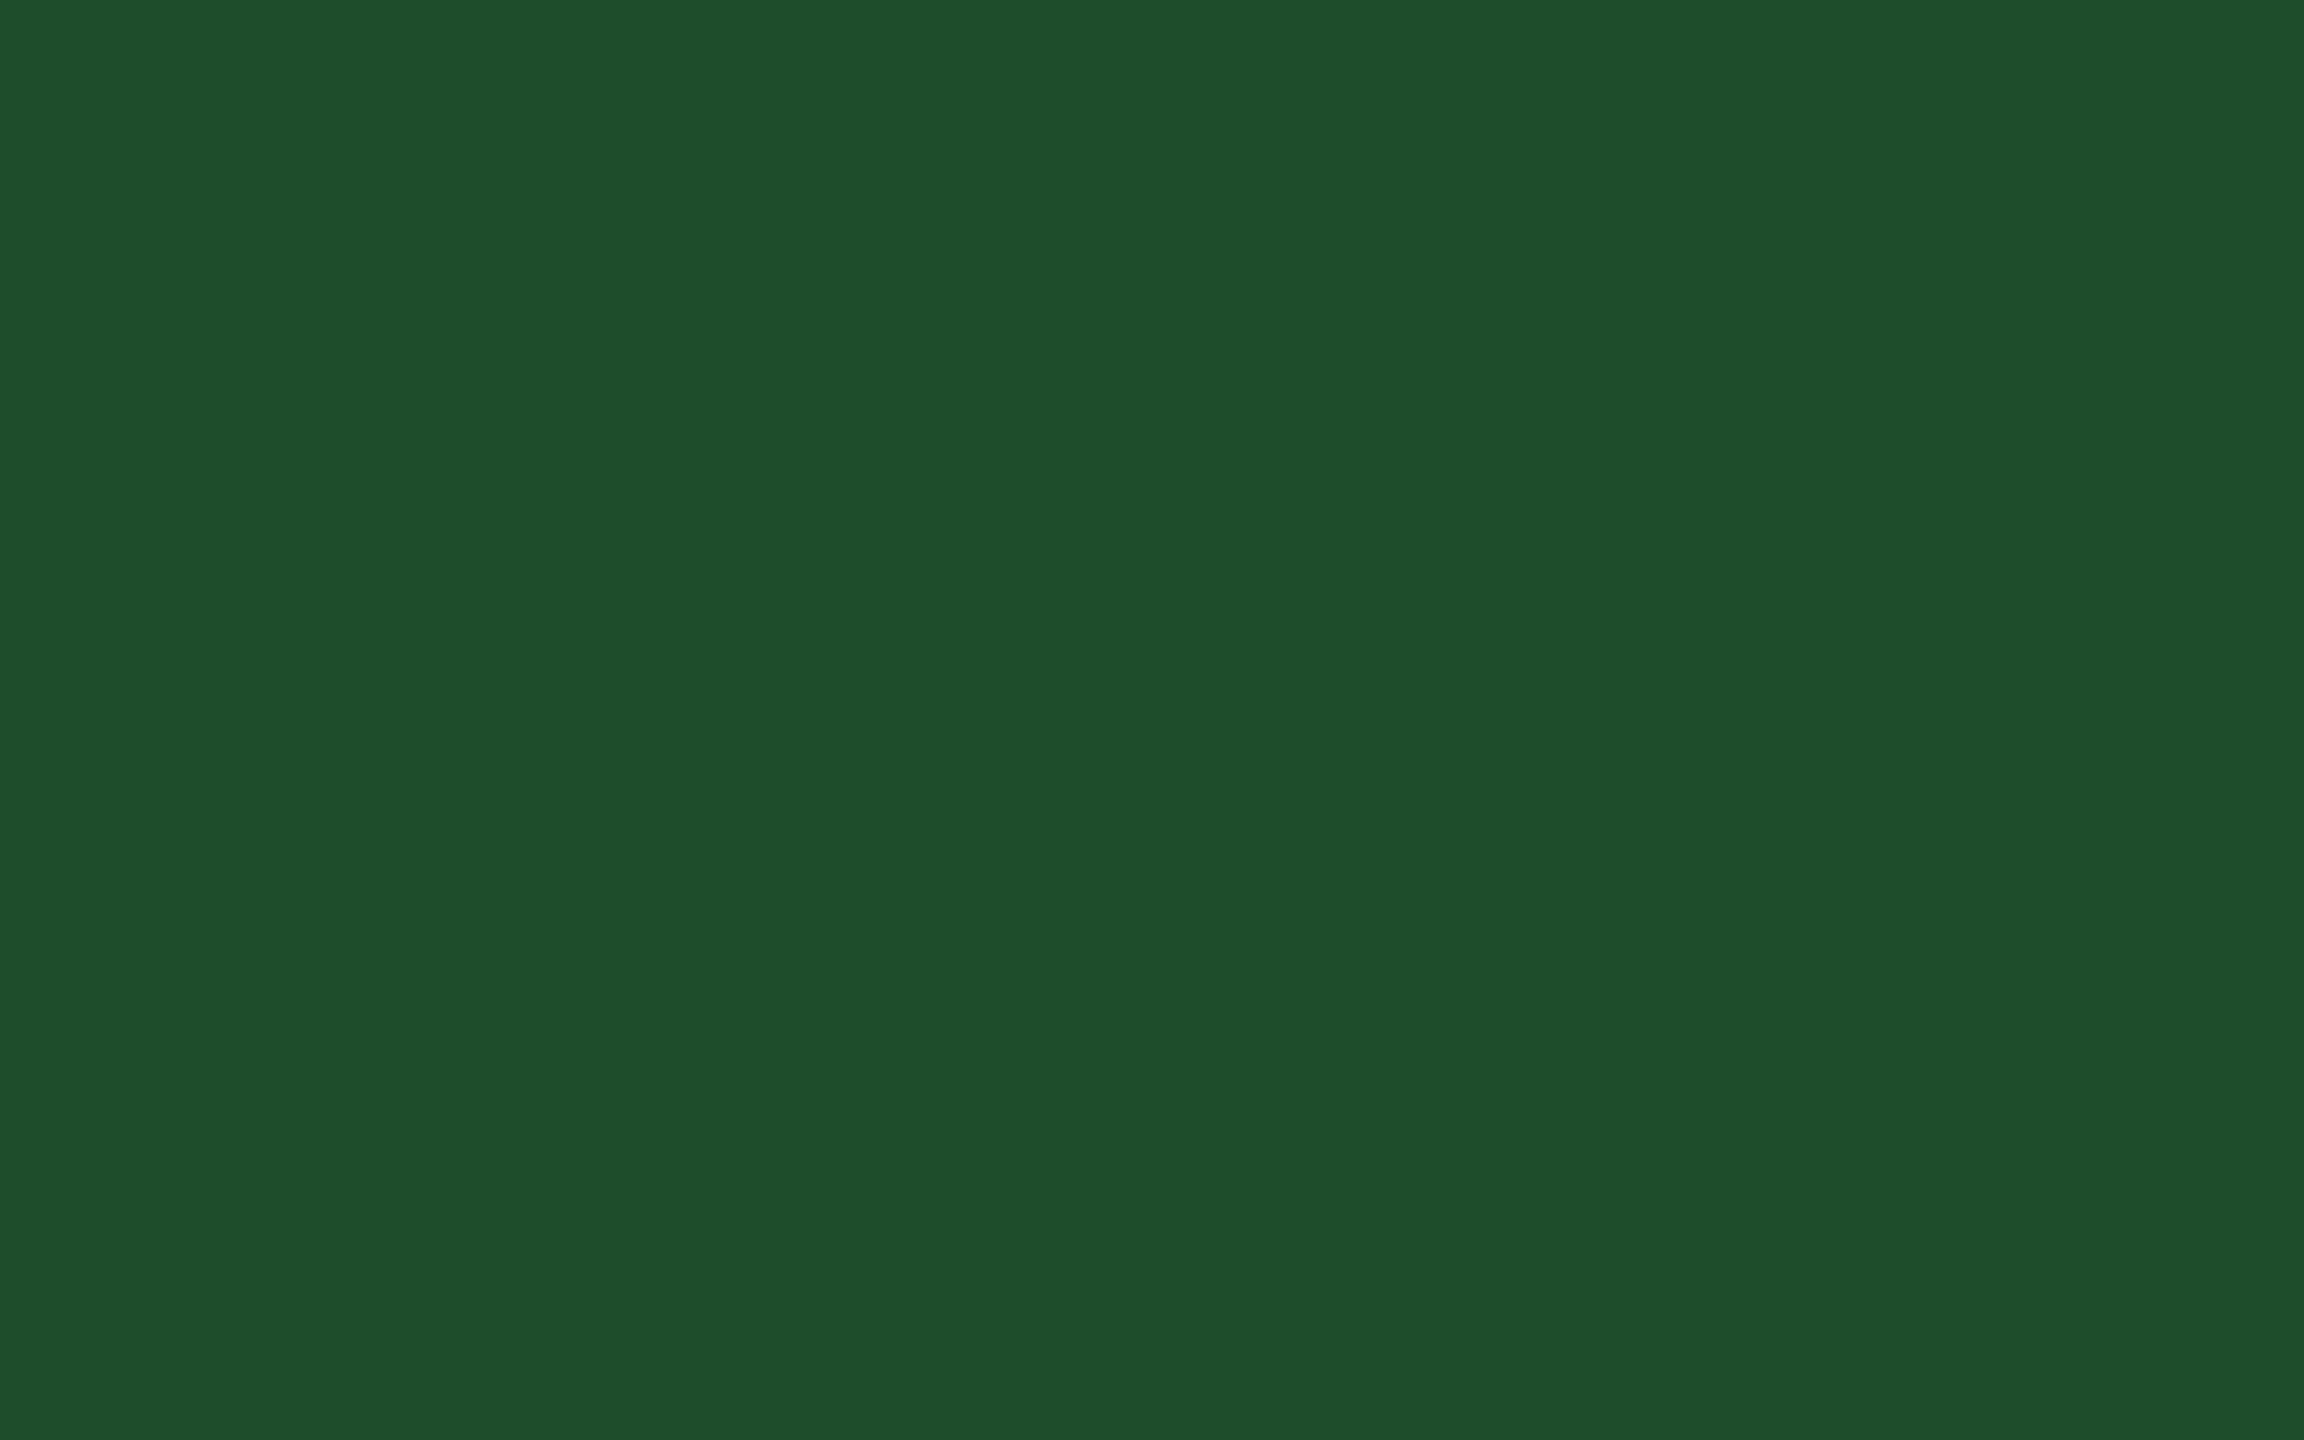 2304x1440 Cal Poly Green Solid Color Background